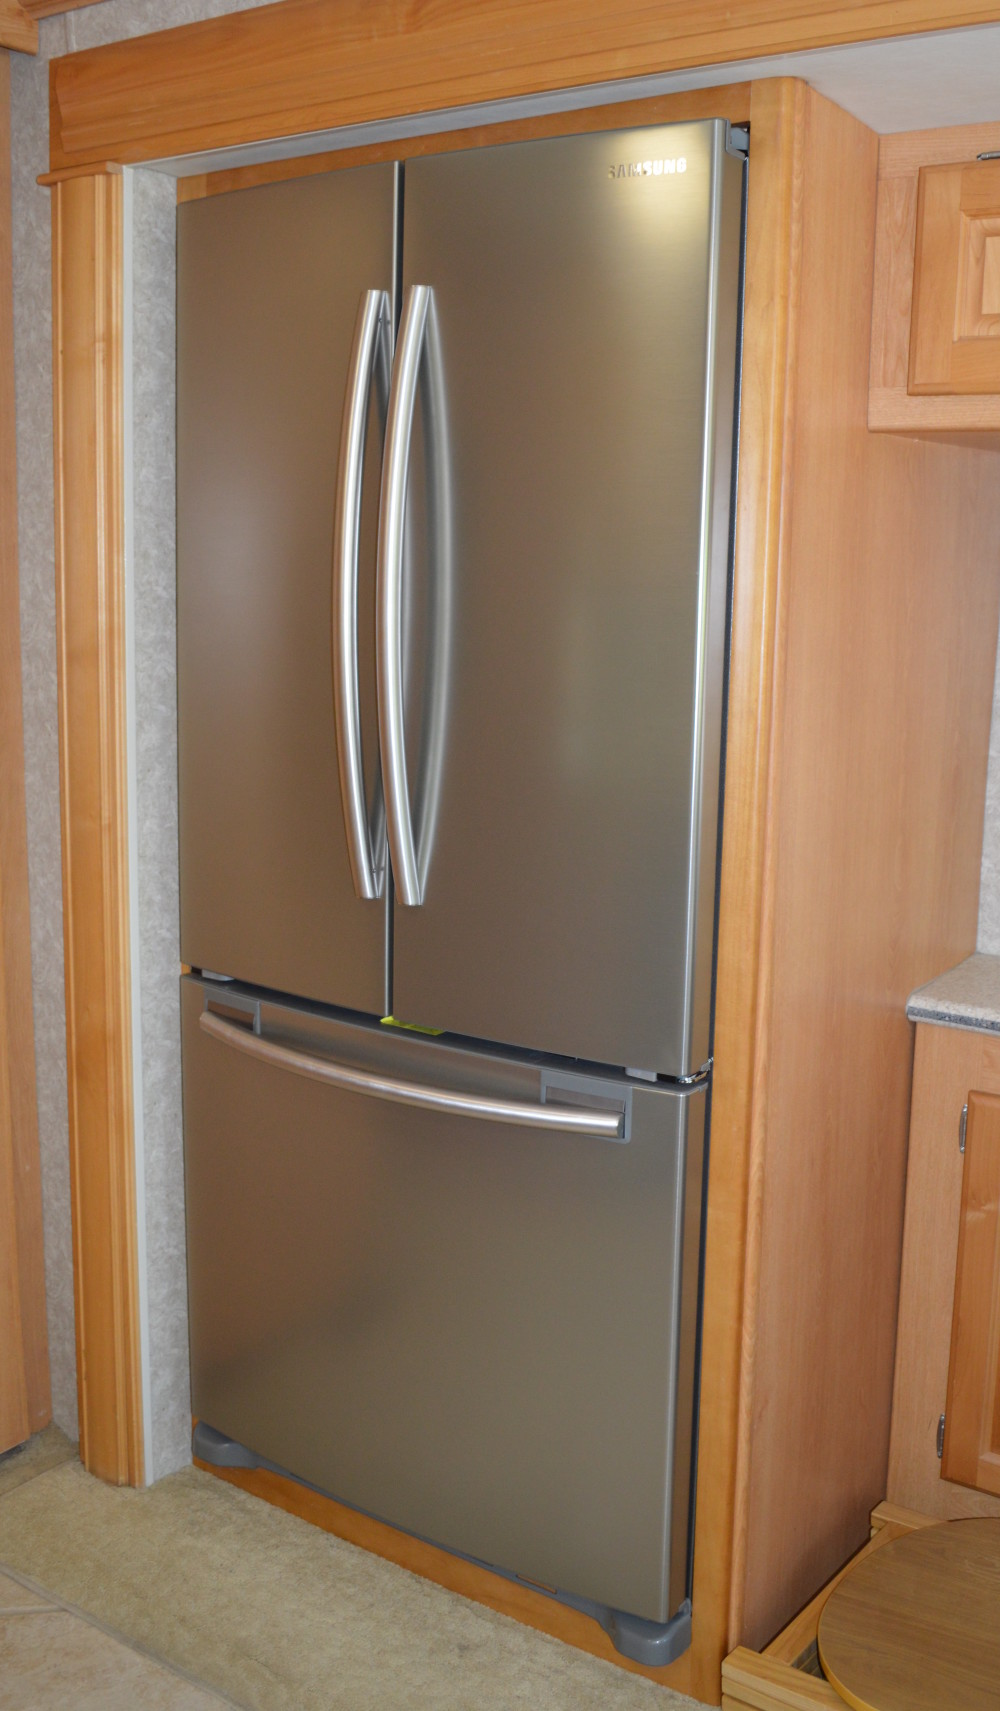 Holiday Rambler Rv >> Refrigerators - RV Renovations by Classic Coach Works